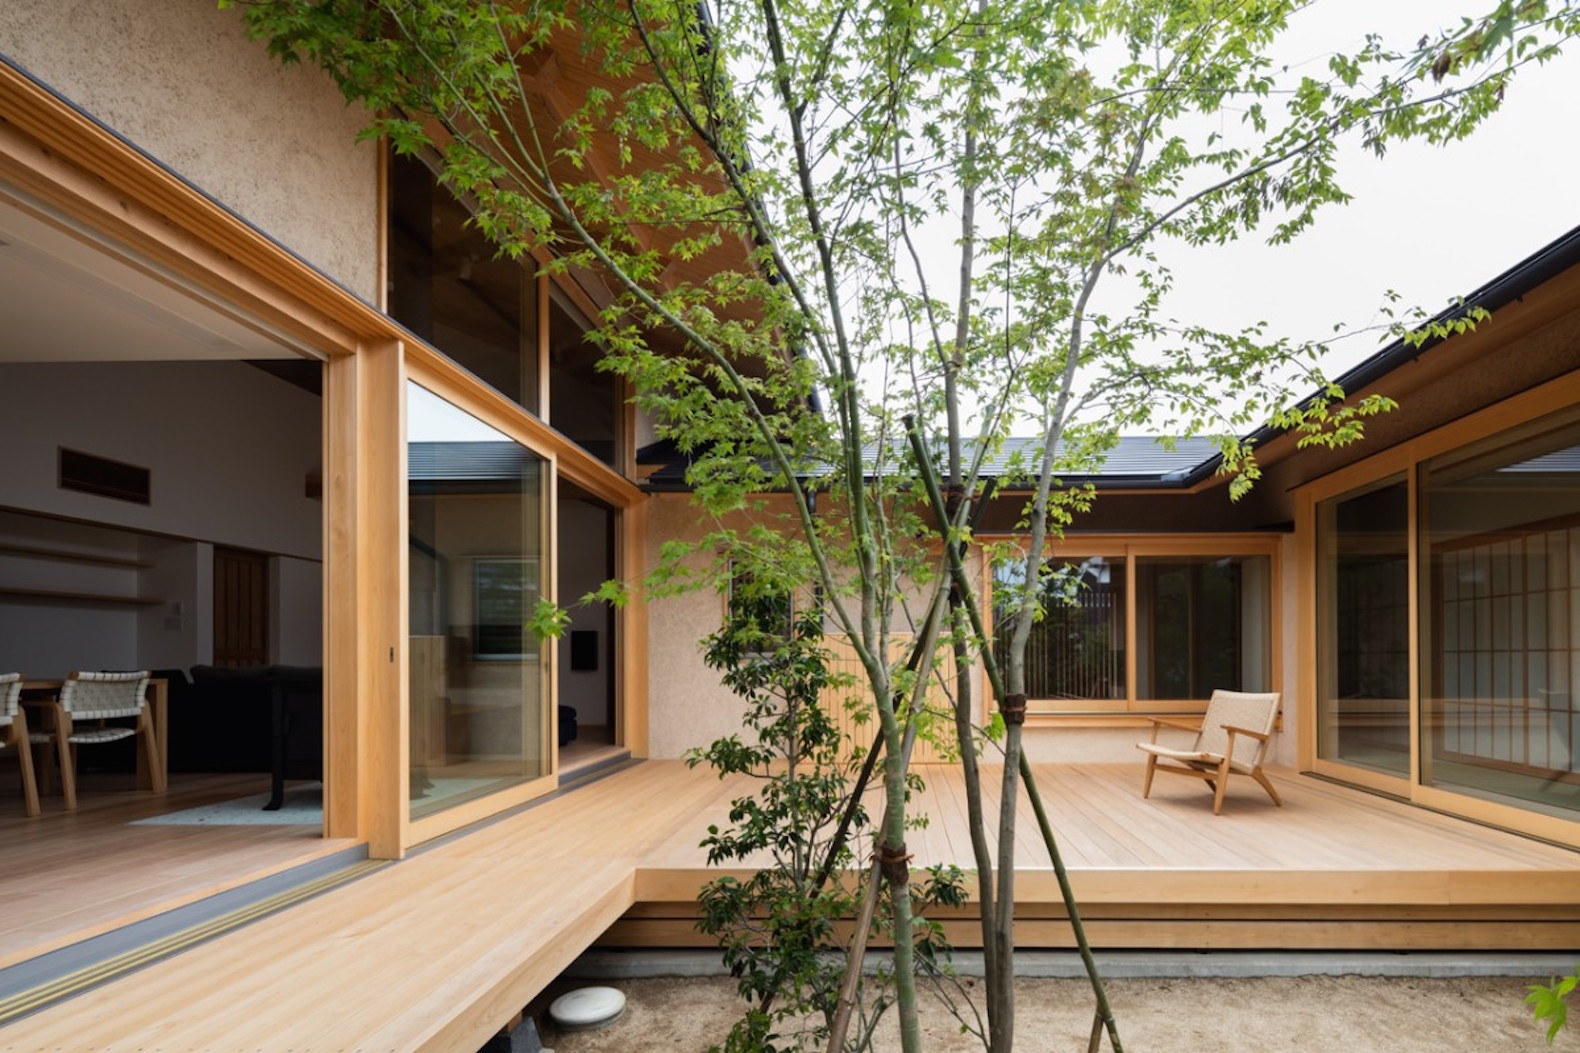 High Quality Exquisite Japanese House Wraps Around A Generations Old Tree Photo Gallery